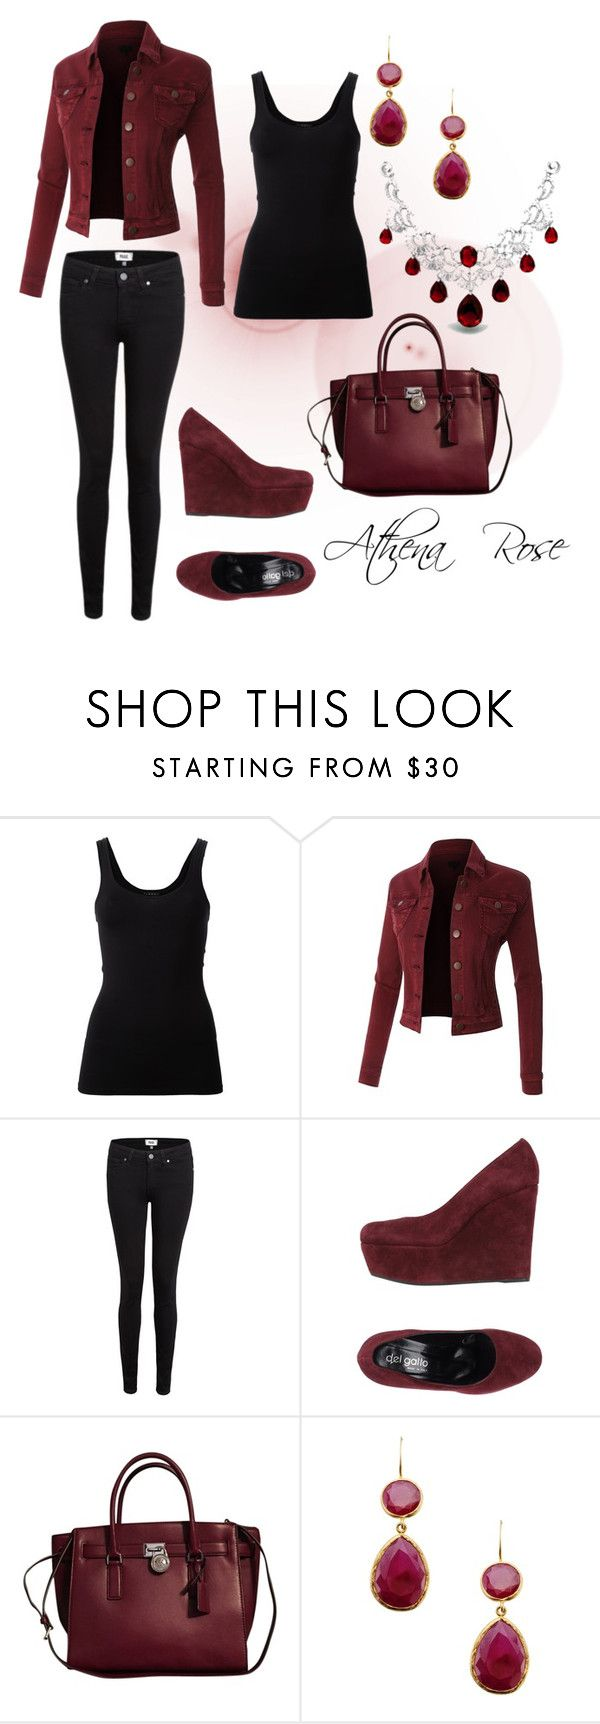 """""""Untitled #68"""" by athena-rose15 ❤ liked on Polyvore featuring Theory, Paige Denim, Del Gatto, Michael Kors, First People First and Bling Jewelry"""